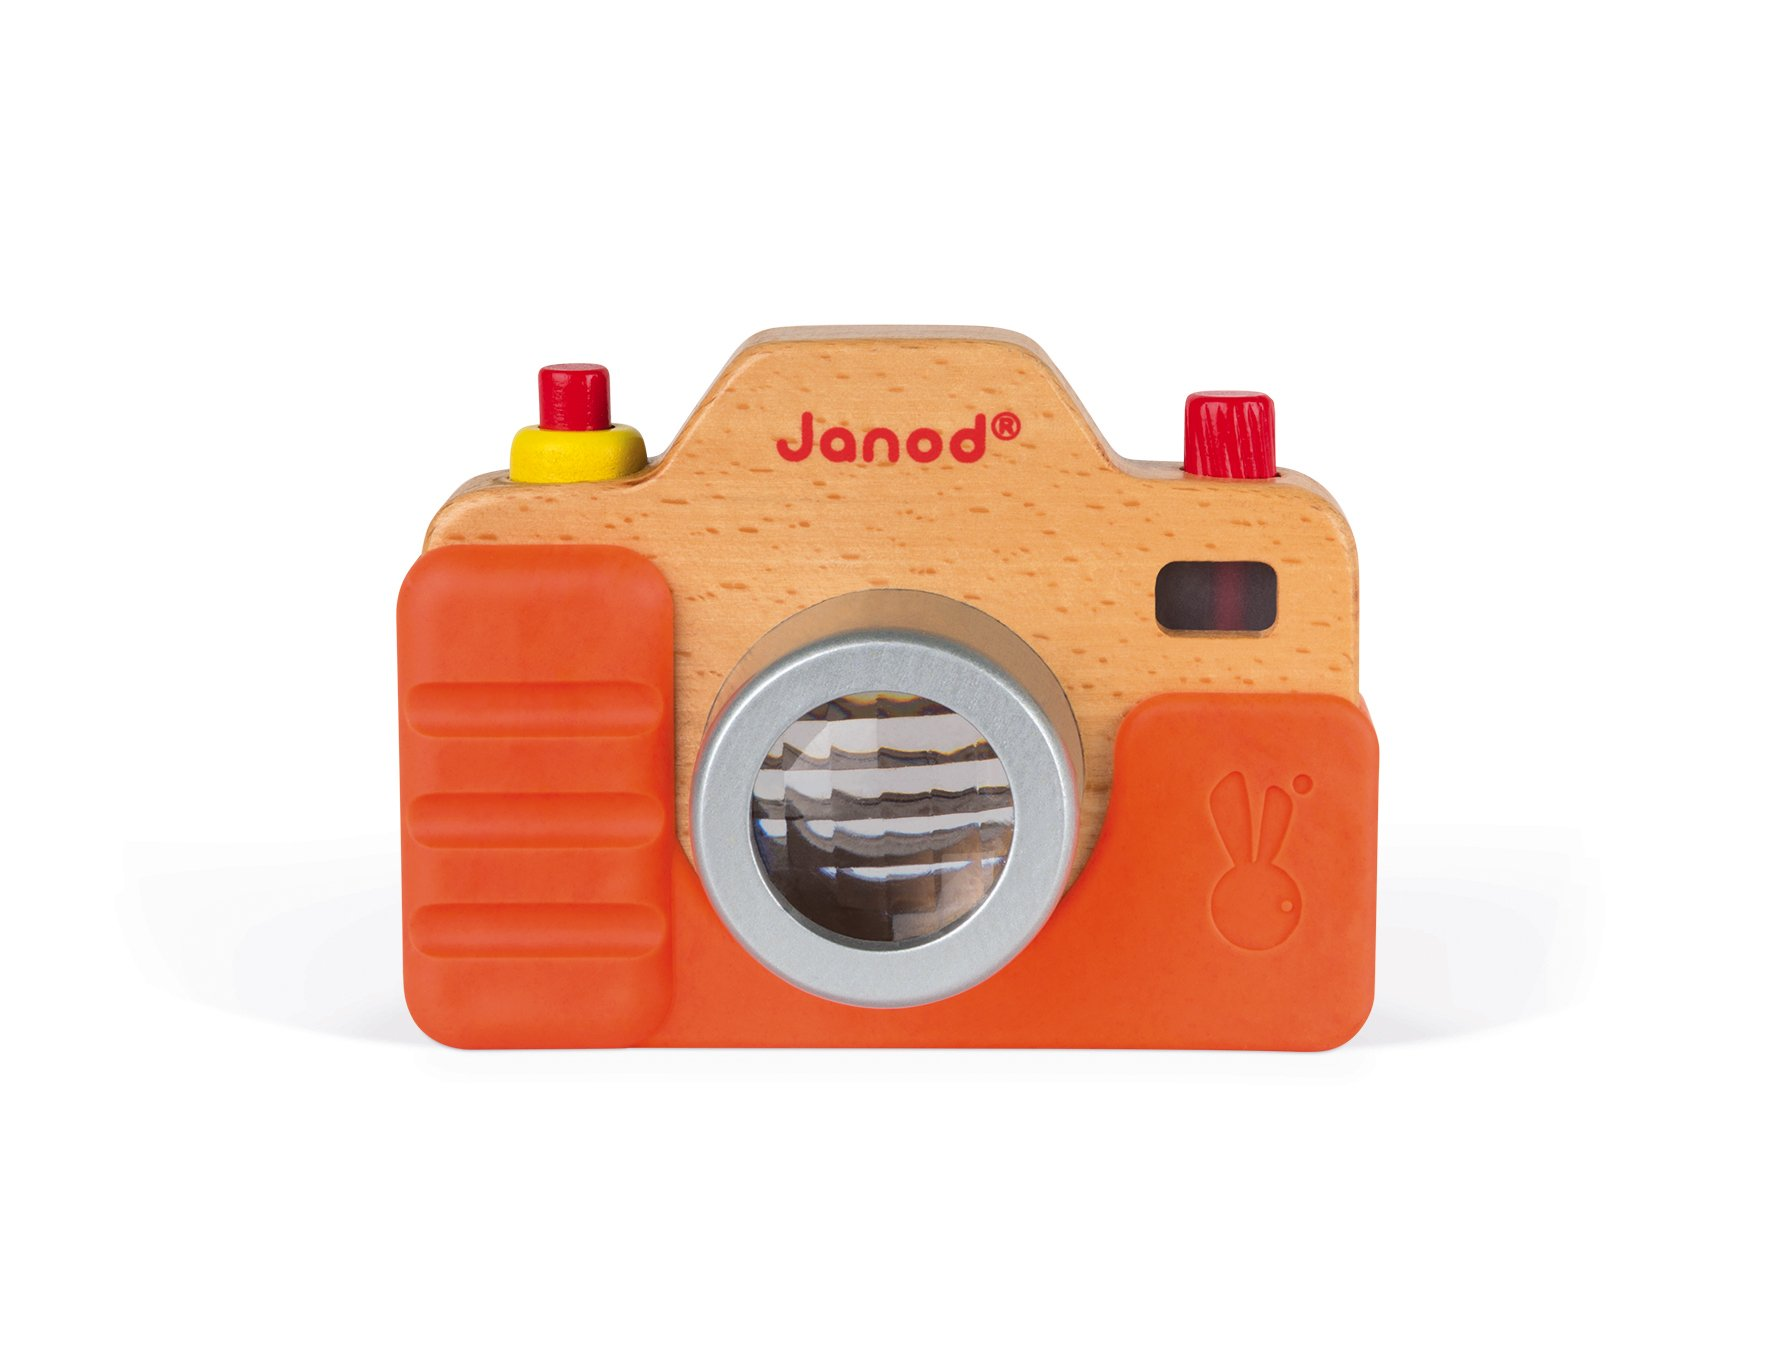 Janod Wooden Interactive Sound Camera Toy by Janod (Image #5)